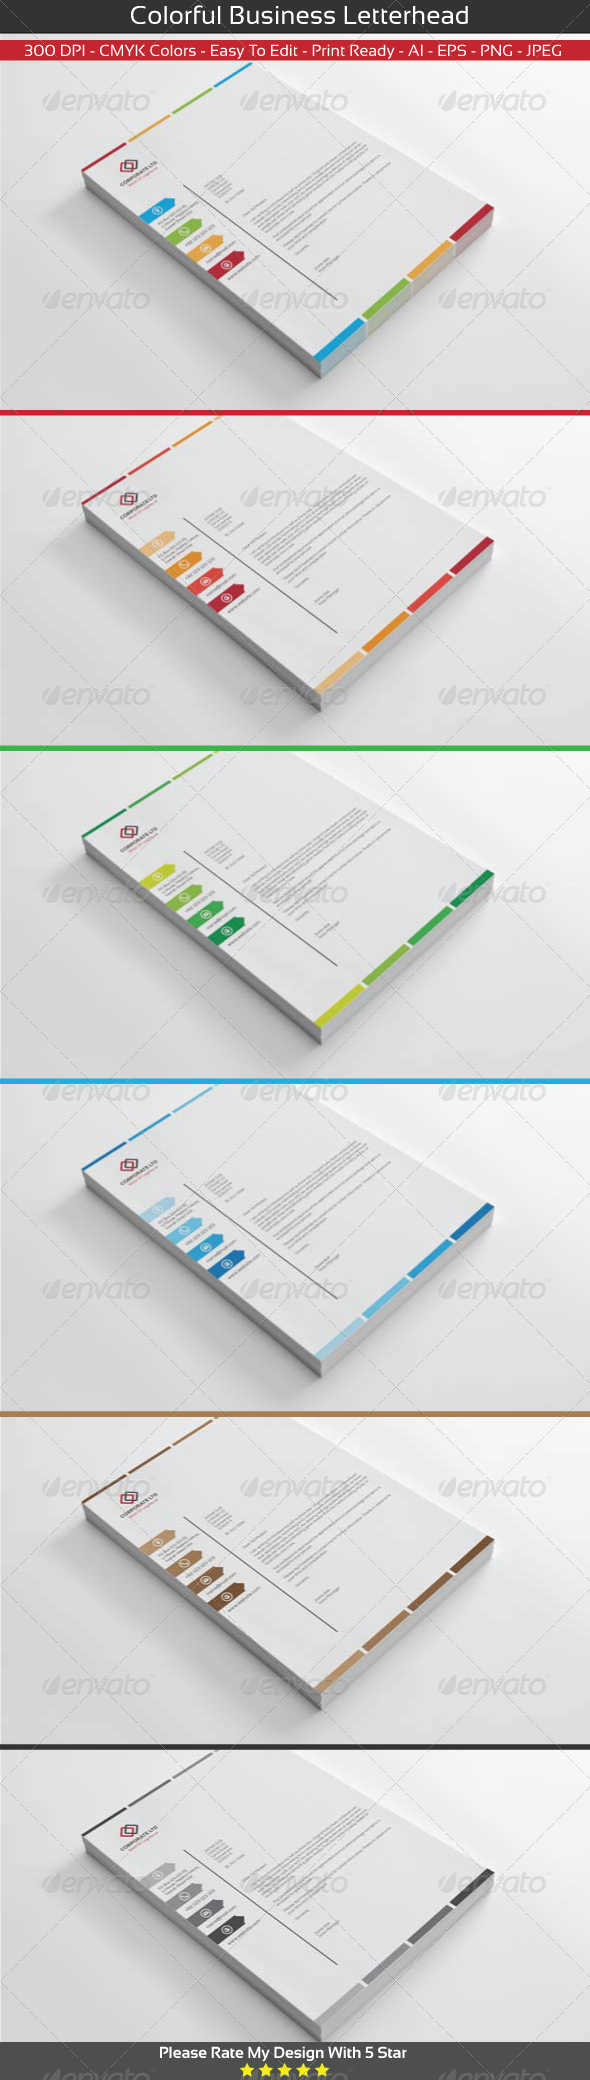 GraphicRiver Colorful Business Letterhead 8469499